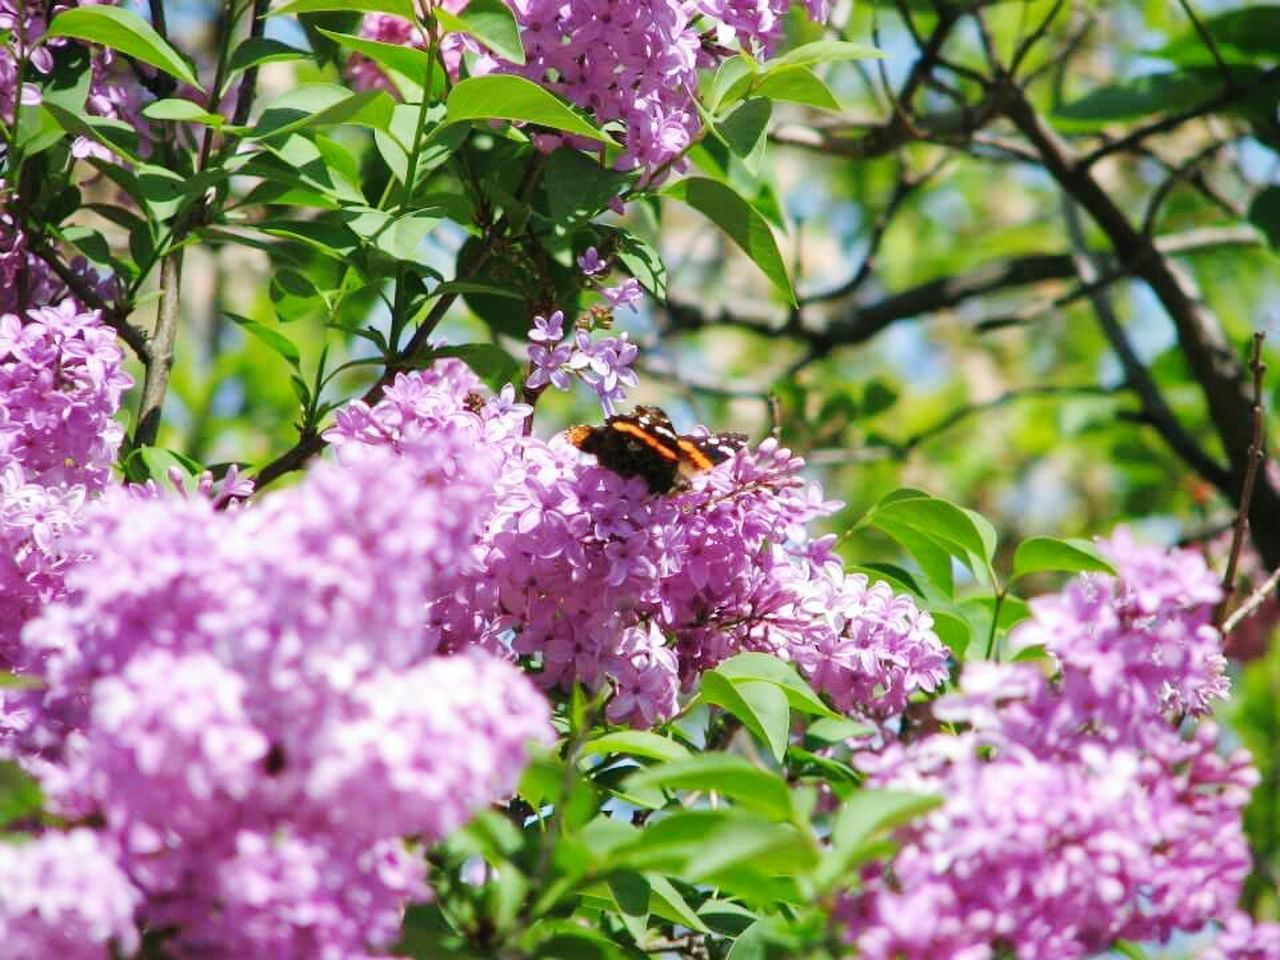 flower, growth, one animal, purple, insect, nature, fragility, freshness, beauty in nature, animals in the wild, animal themes, plant, no people, pollination, petal, pink color, outdoors, day, bee, blooming, lilac, flower head, close-up